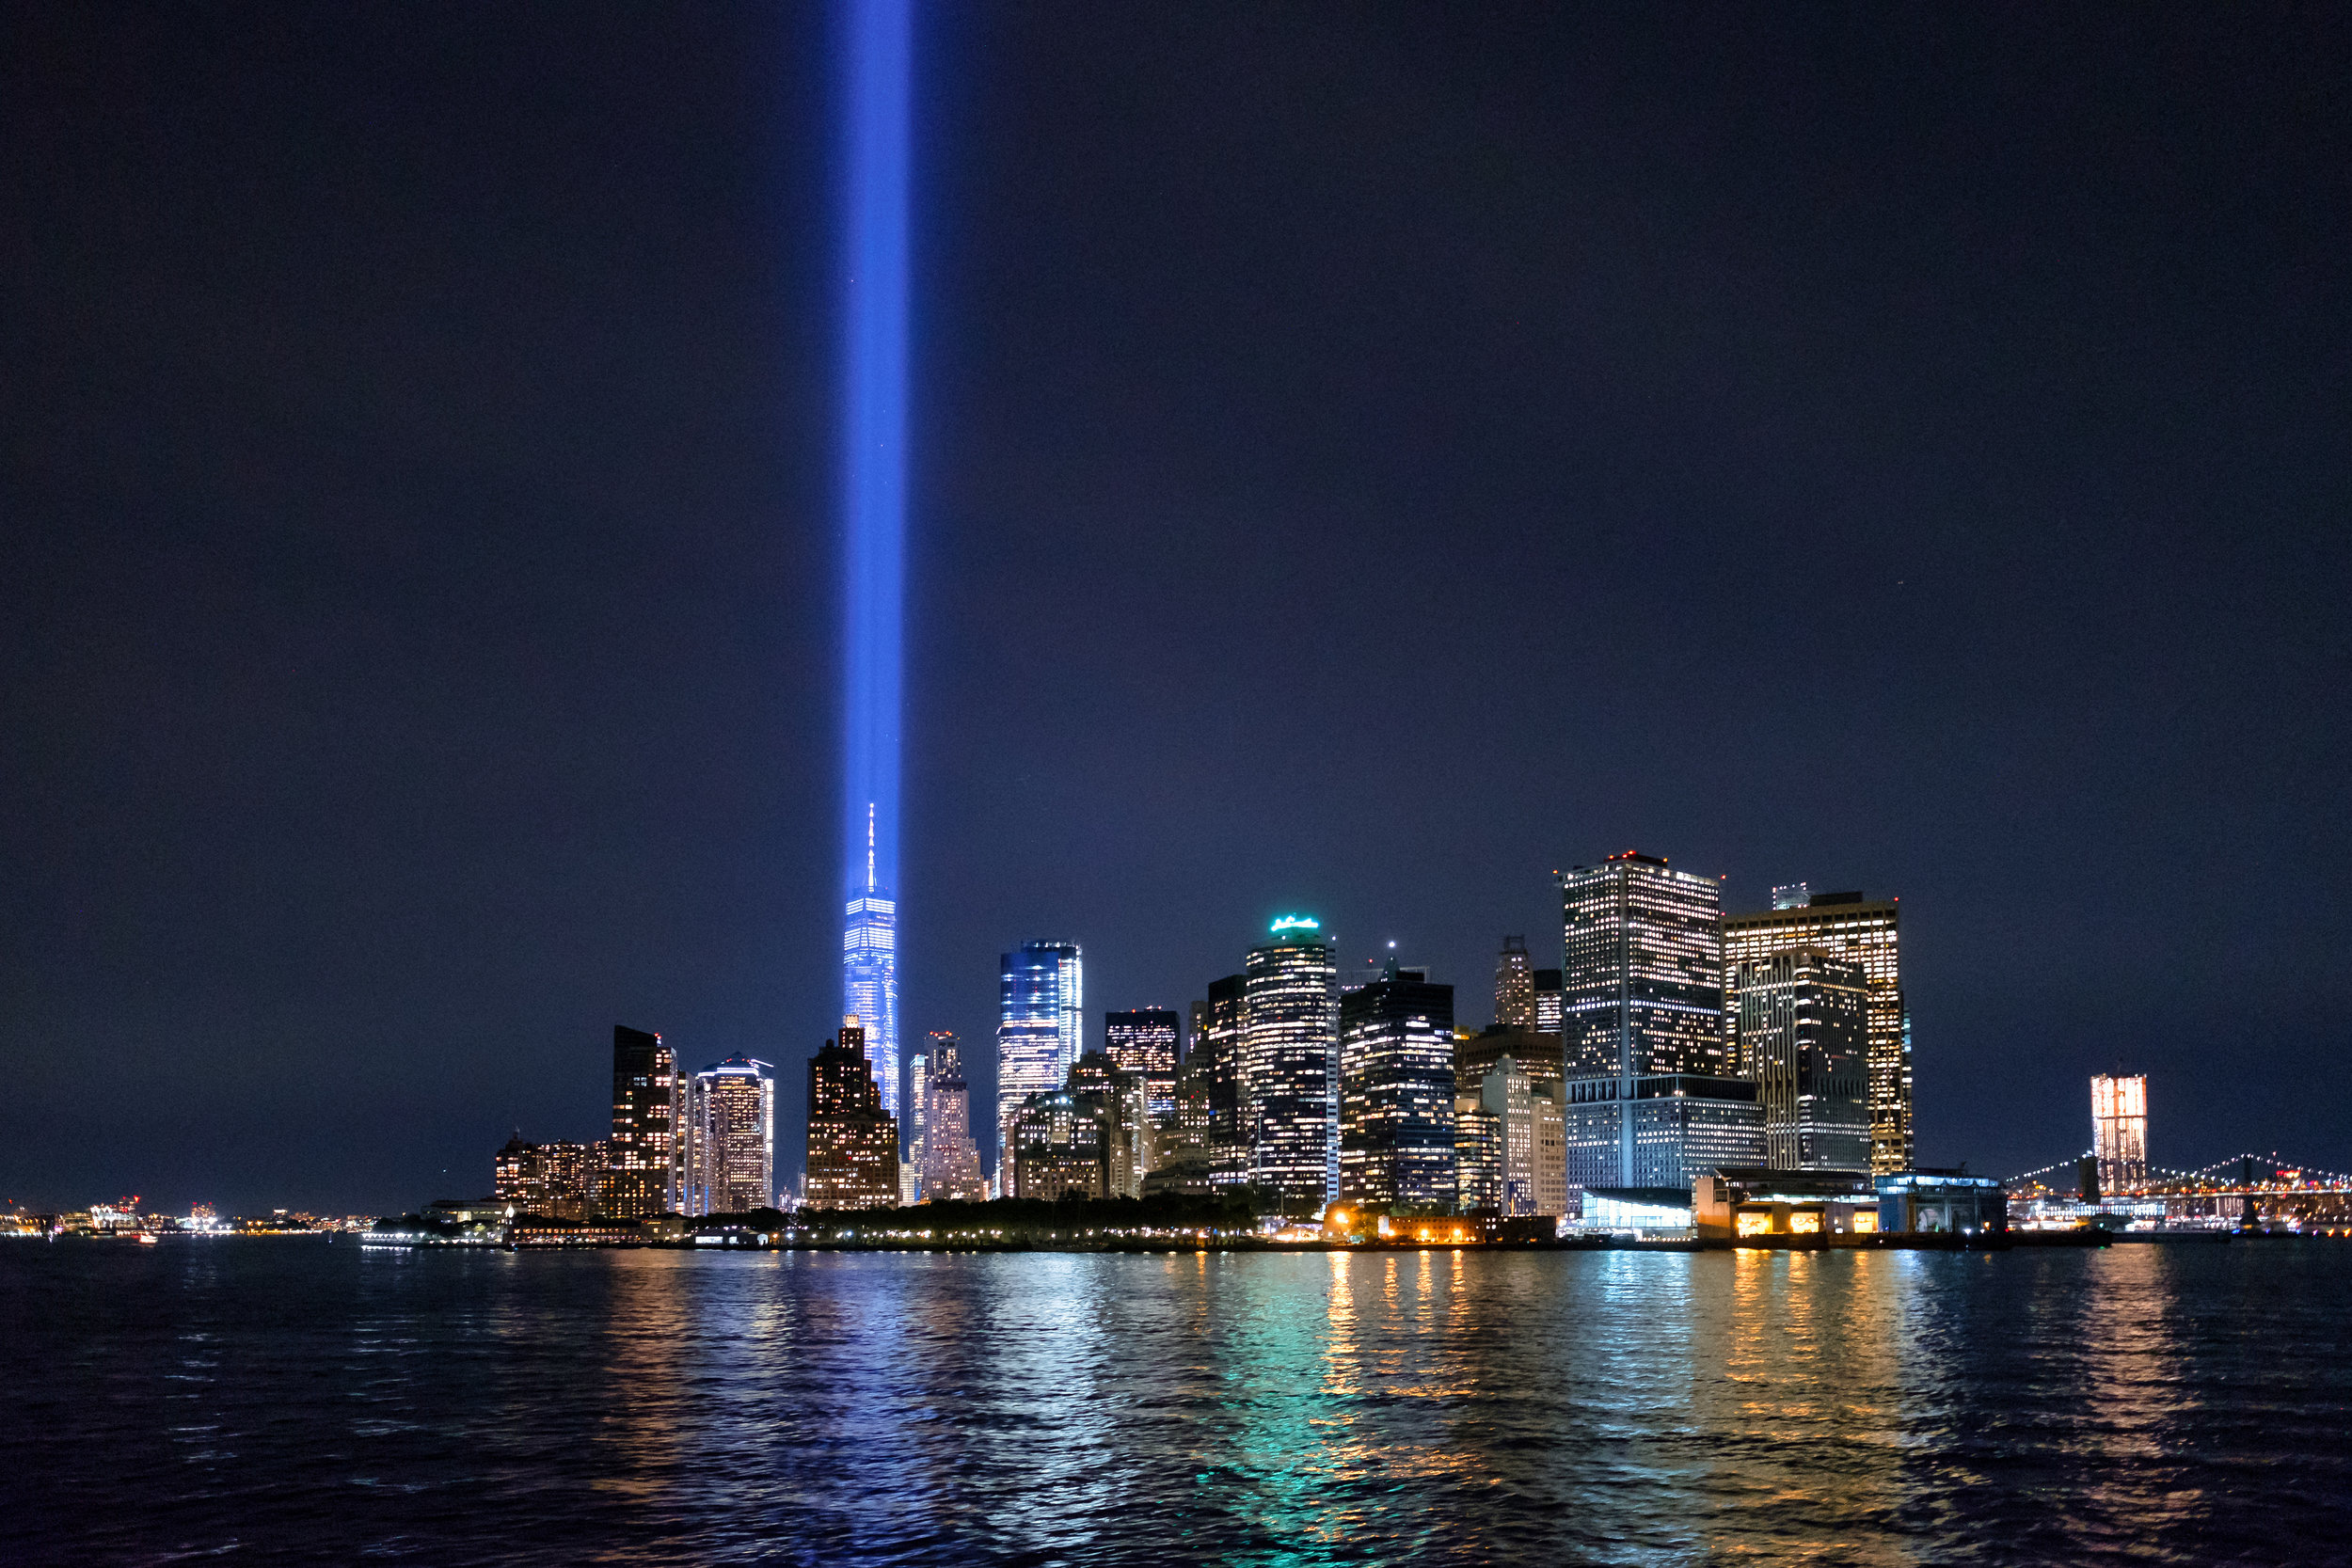 """Unforgotten."" September 11, 2017. Tribute in Light. New York City. Fujifilm X-Pro2, 14mm, f/2.8, 1/17, ISO 6400"